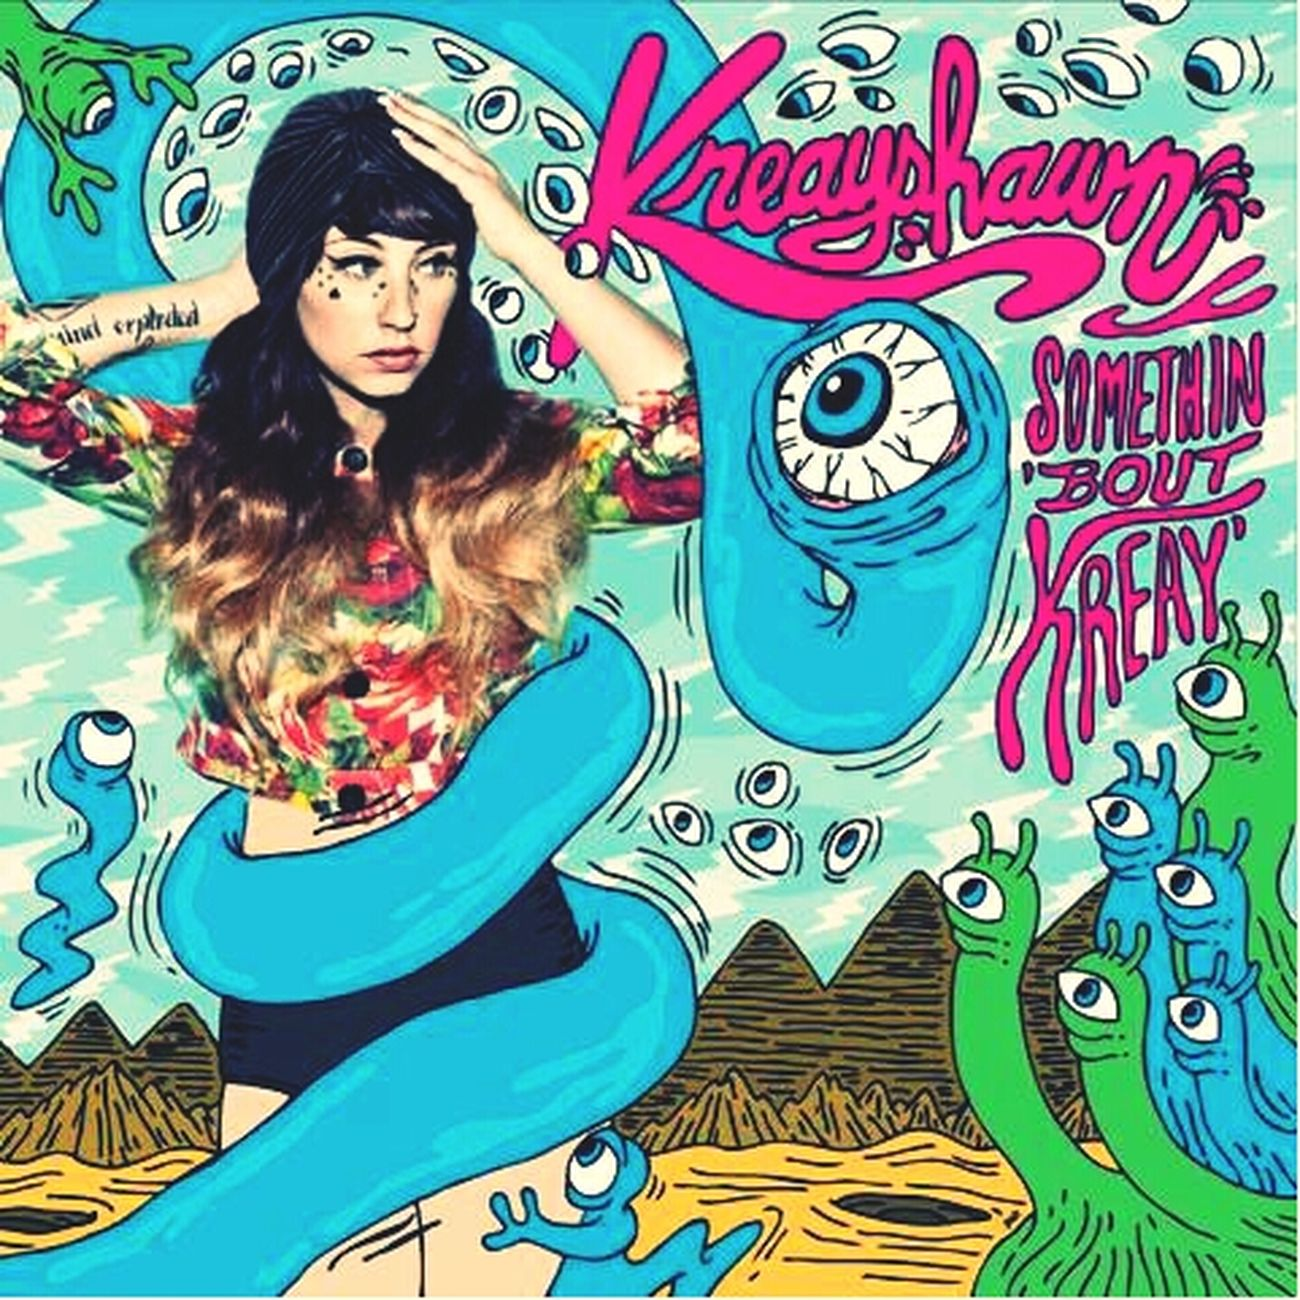 This album is inspiration Kreayshawn